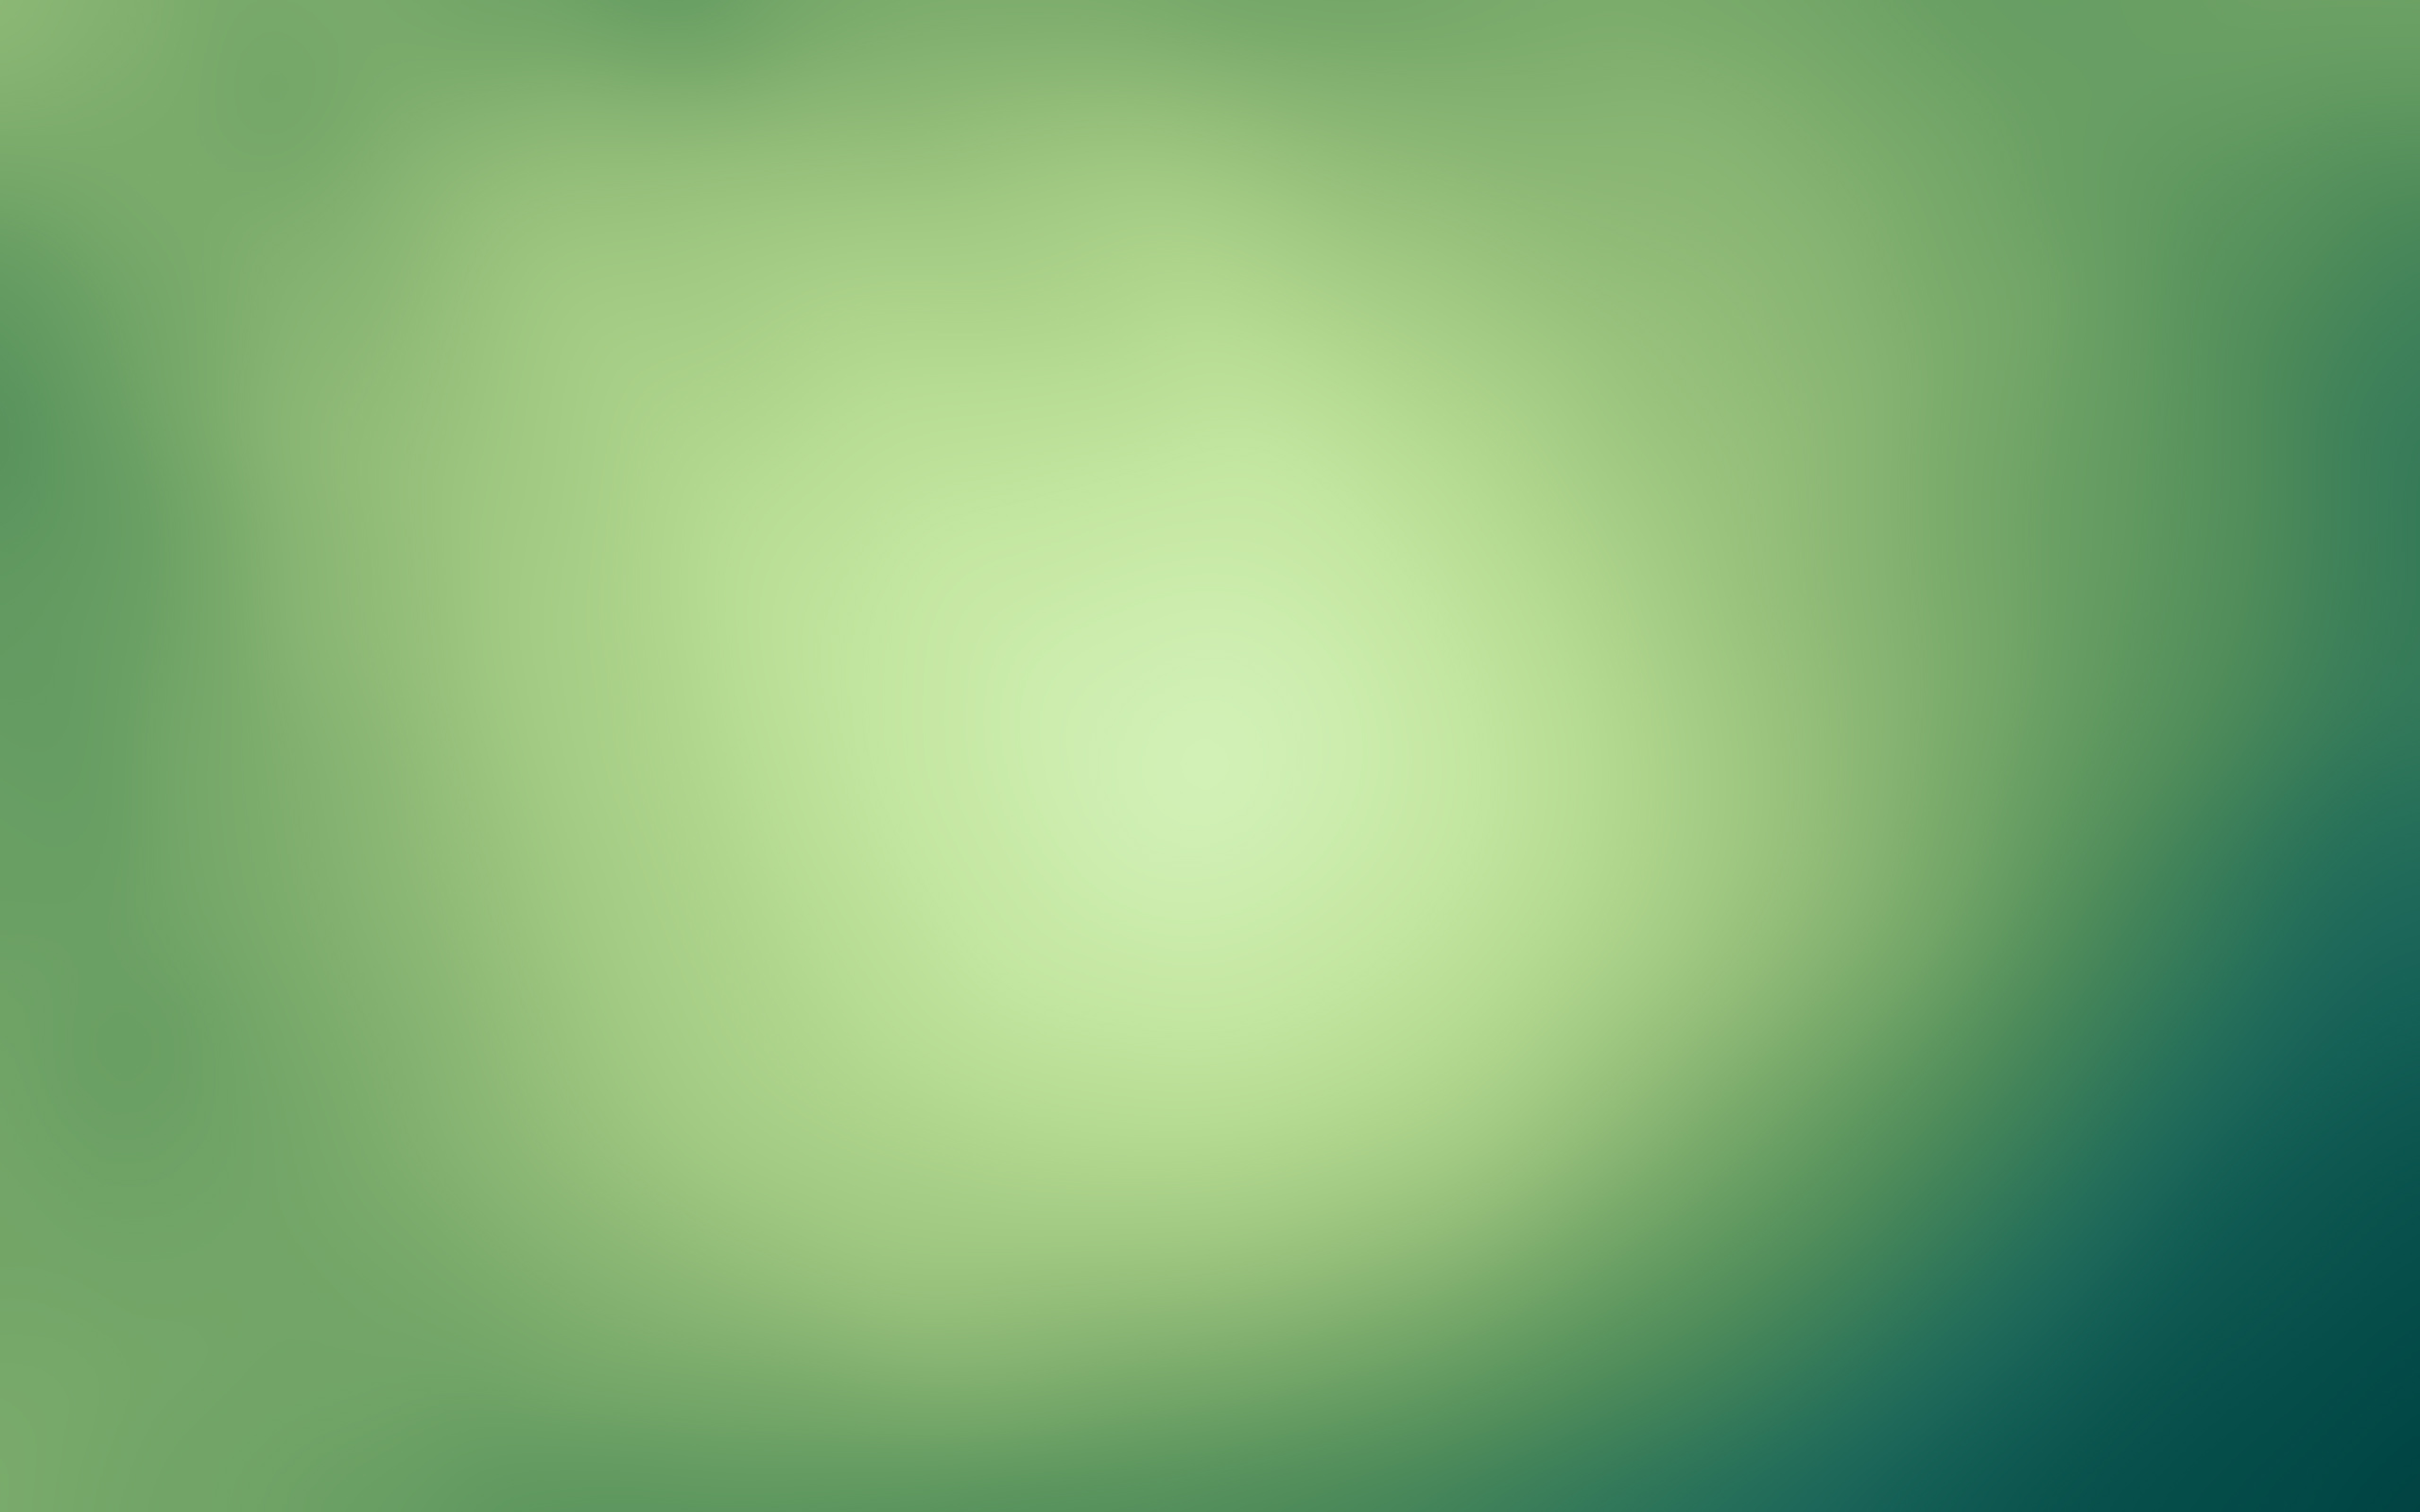 Color Wallpaper Can be Interesting   HD Abstract Widescreen Wallpaper 2560x1600